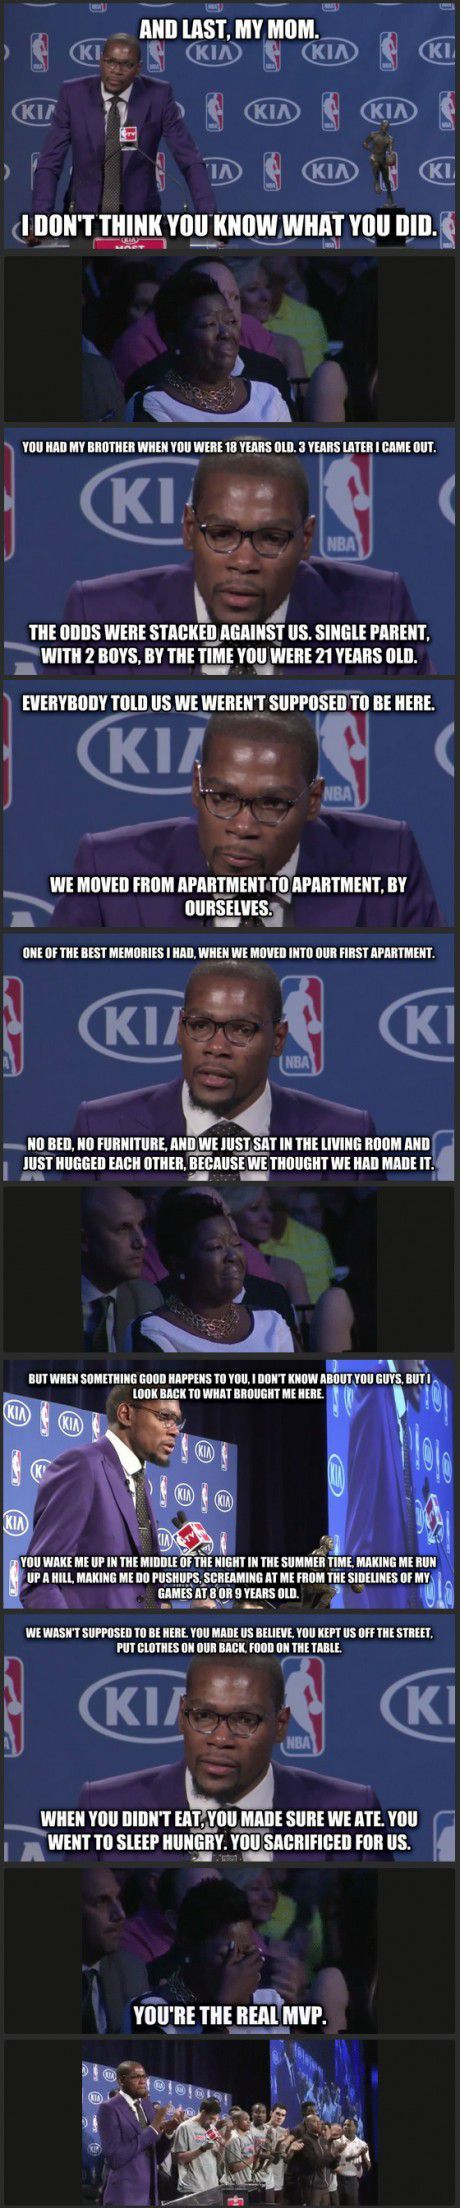 Kevin Durant talking about his mom during MVP speech. This is the best.